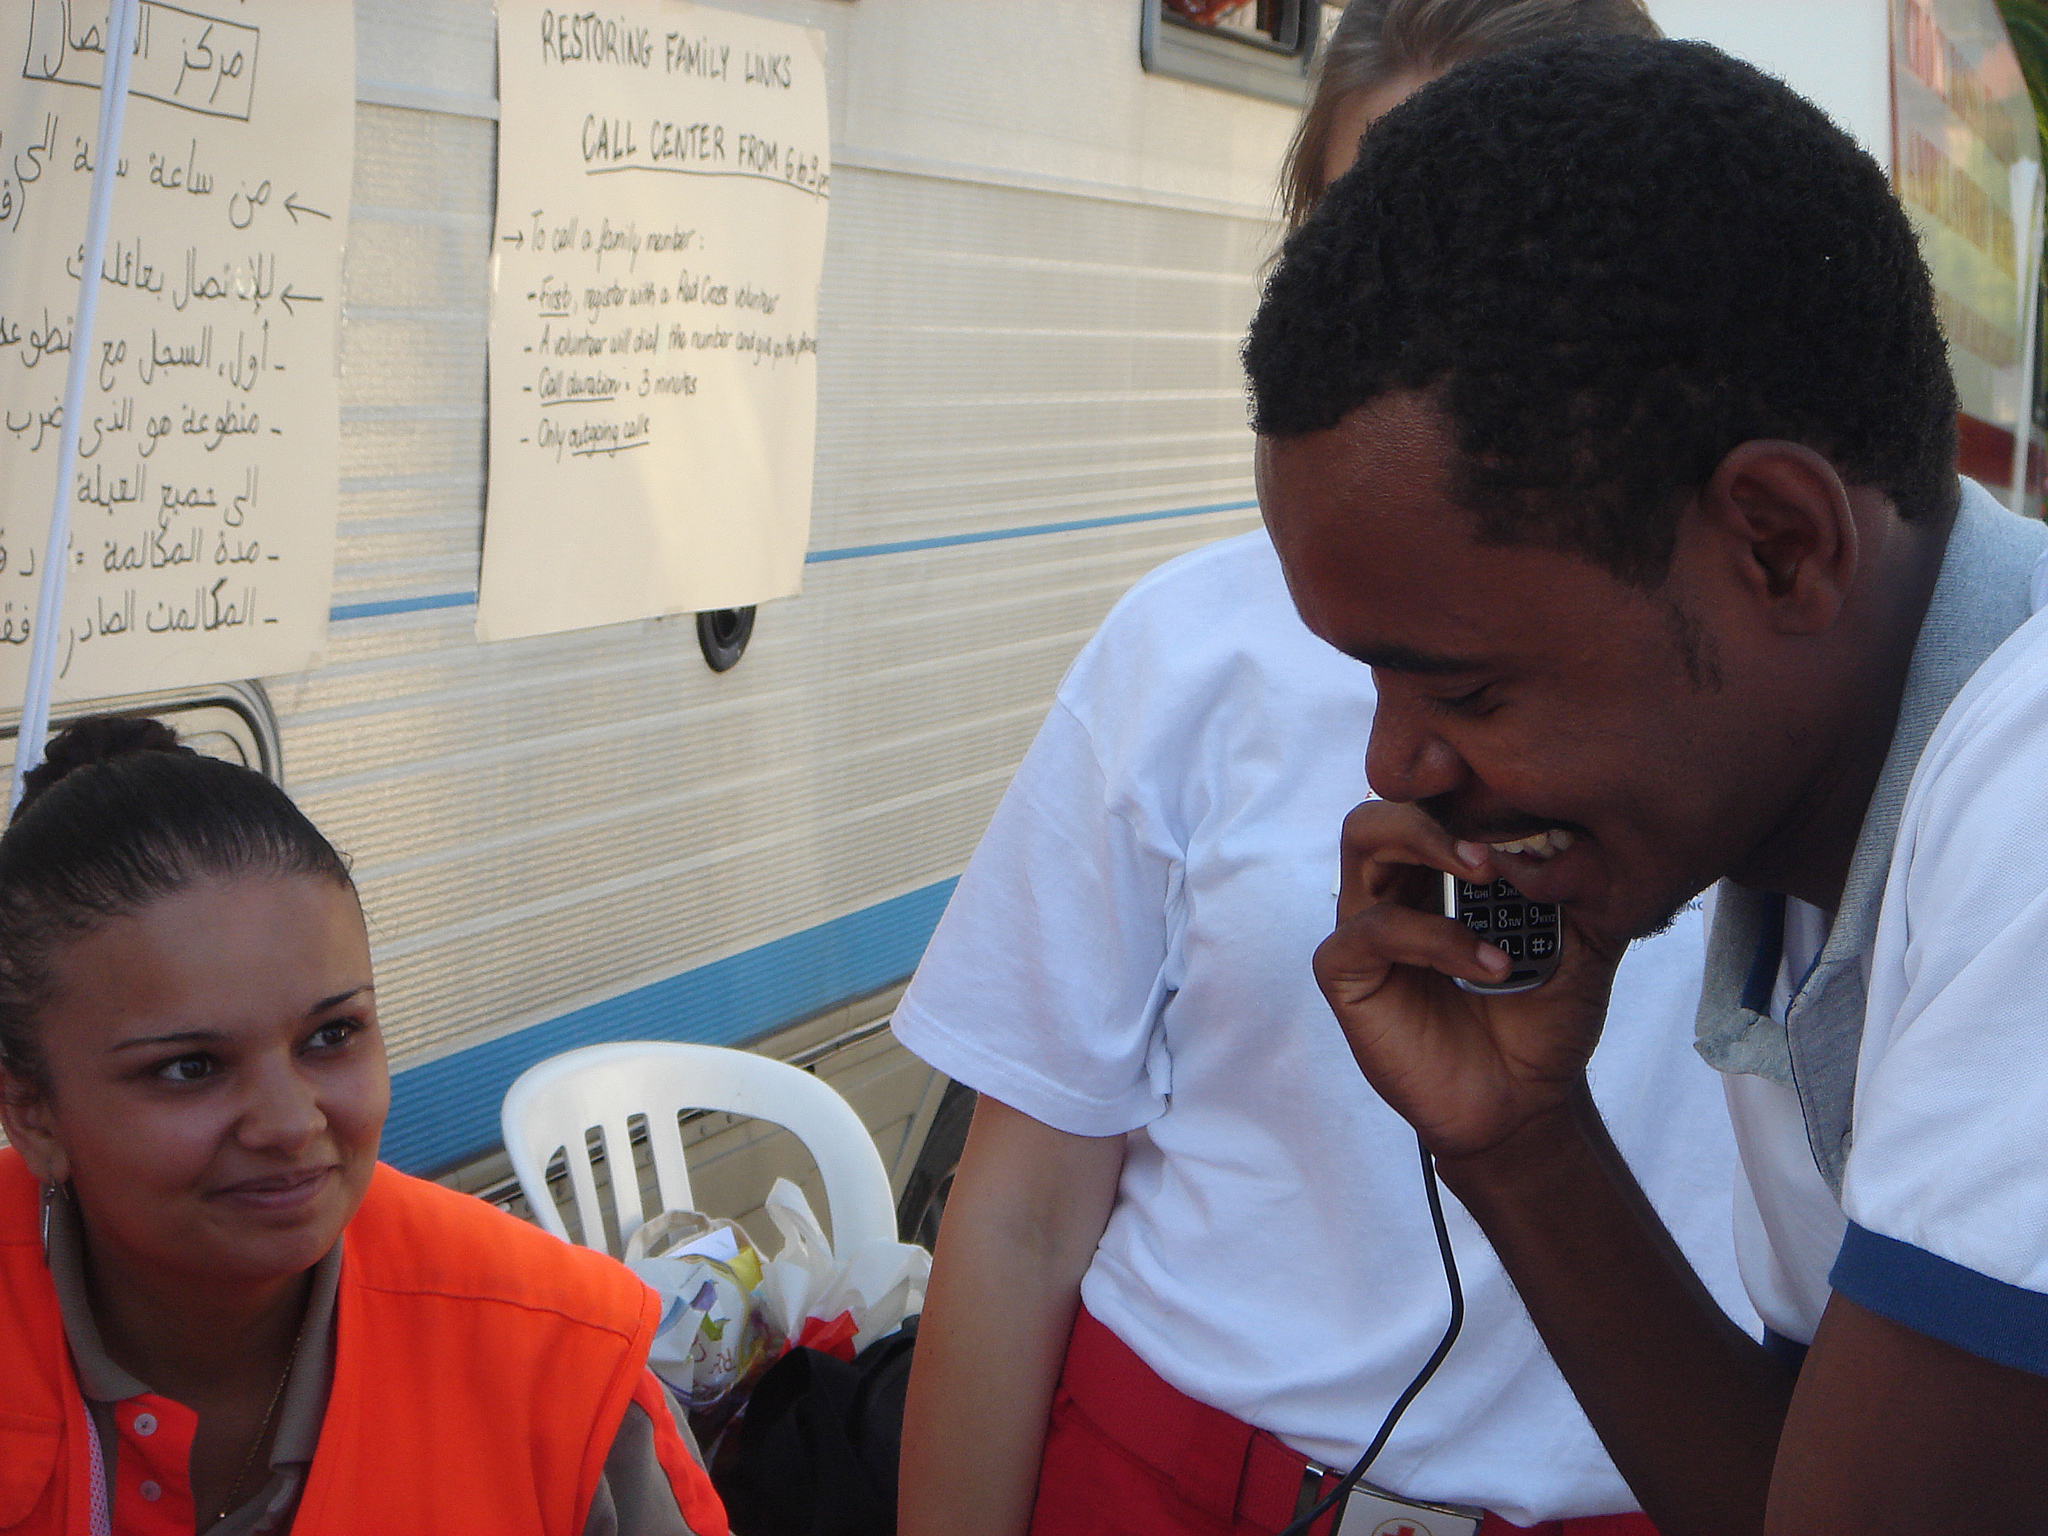 Thumbnail for France / Italy: Red Cross restores family links for migrants